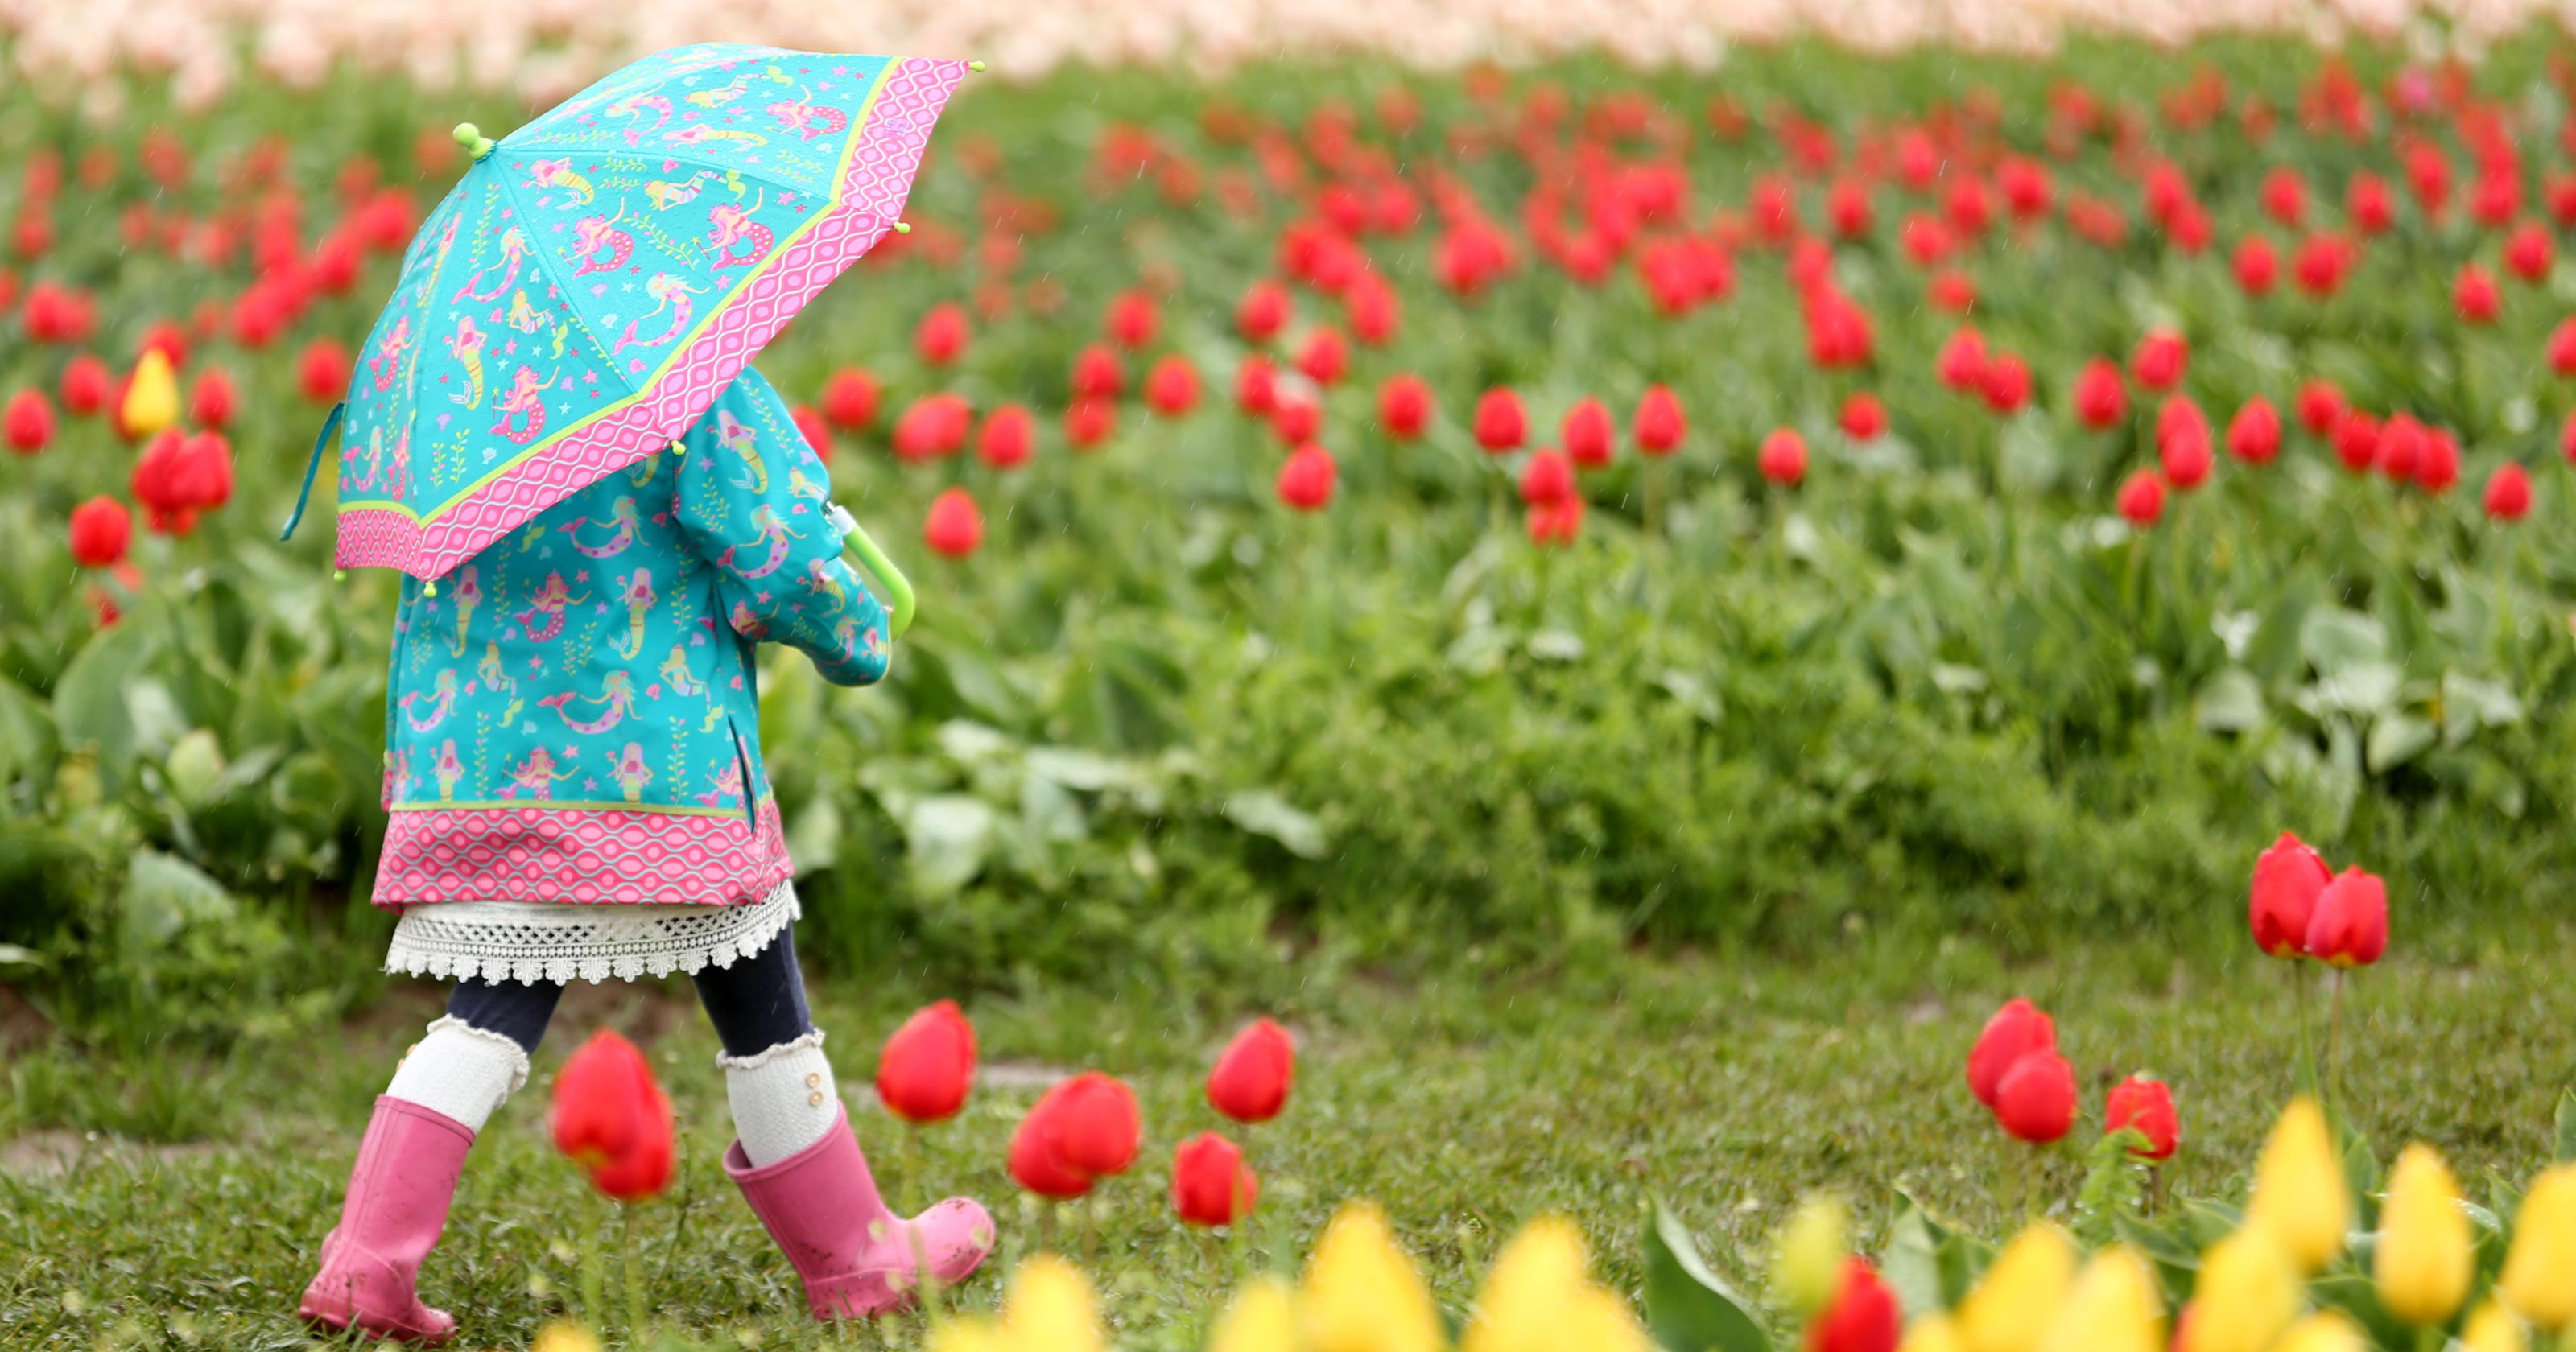 Wooden Shoe Tulip Festival In Oregon Goes Through May 6